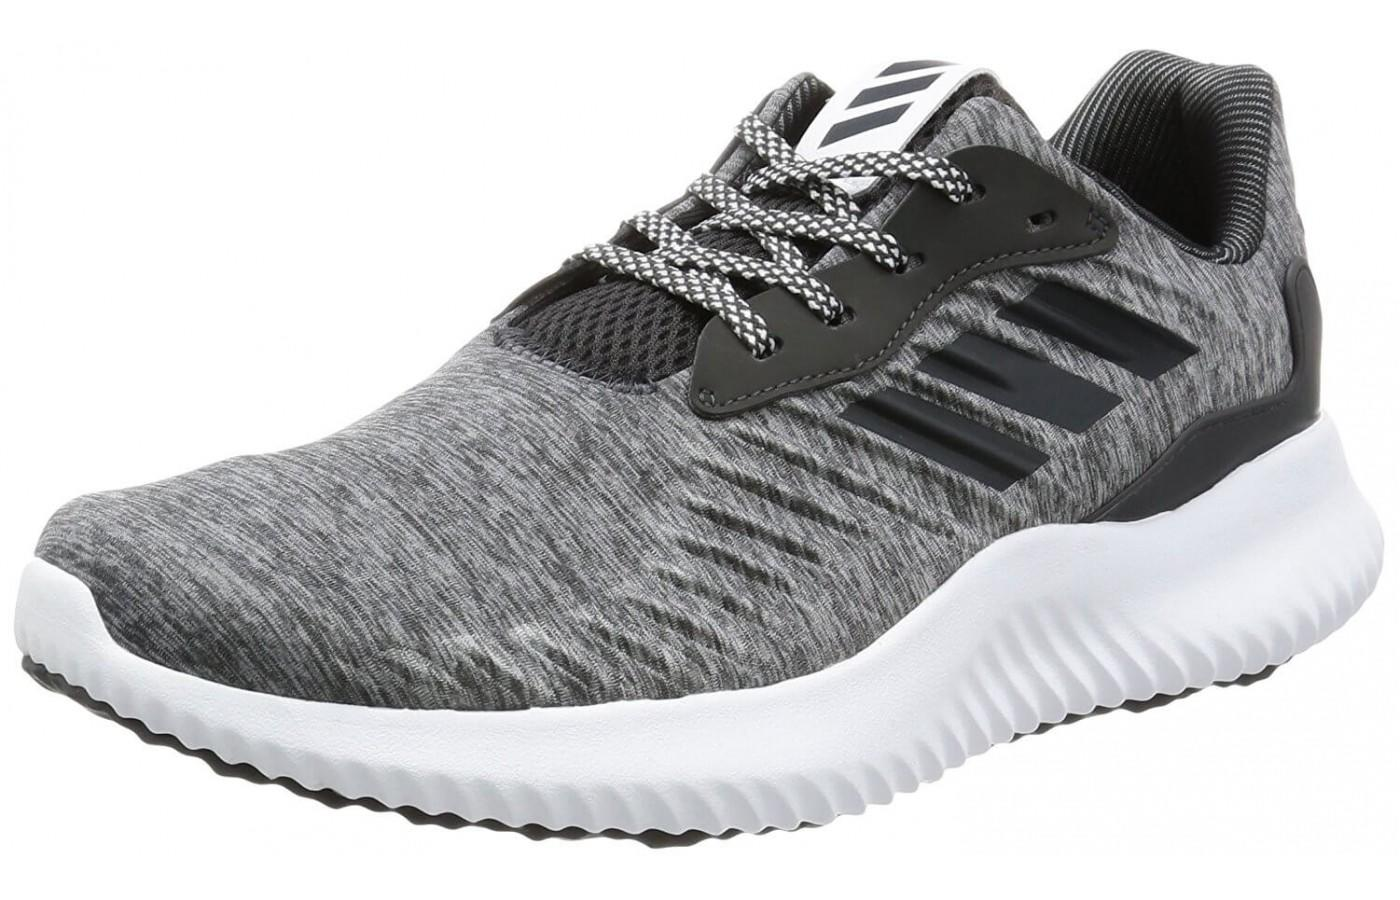 65862e432 Adidas Alphabounce RC Review - Buy or Not in May 2019